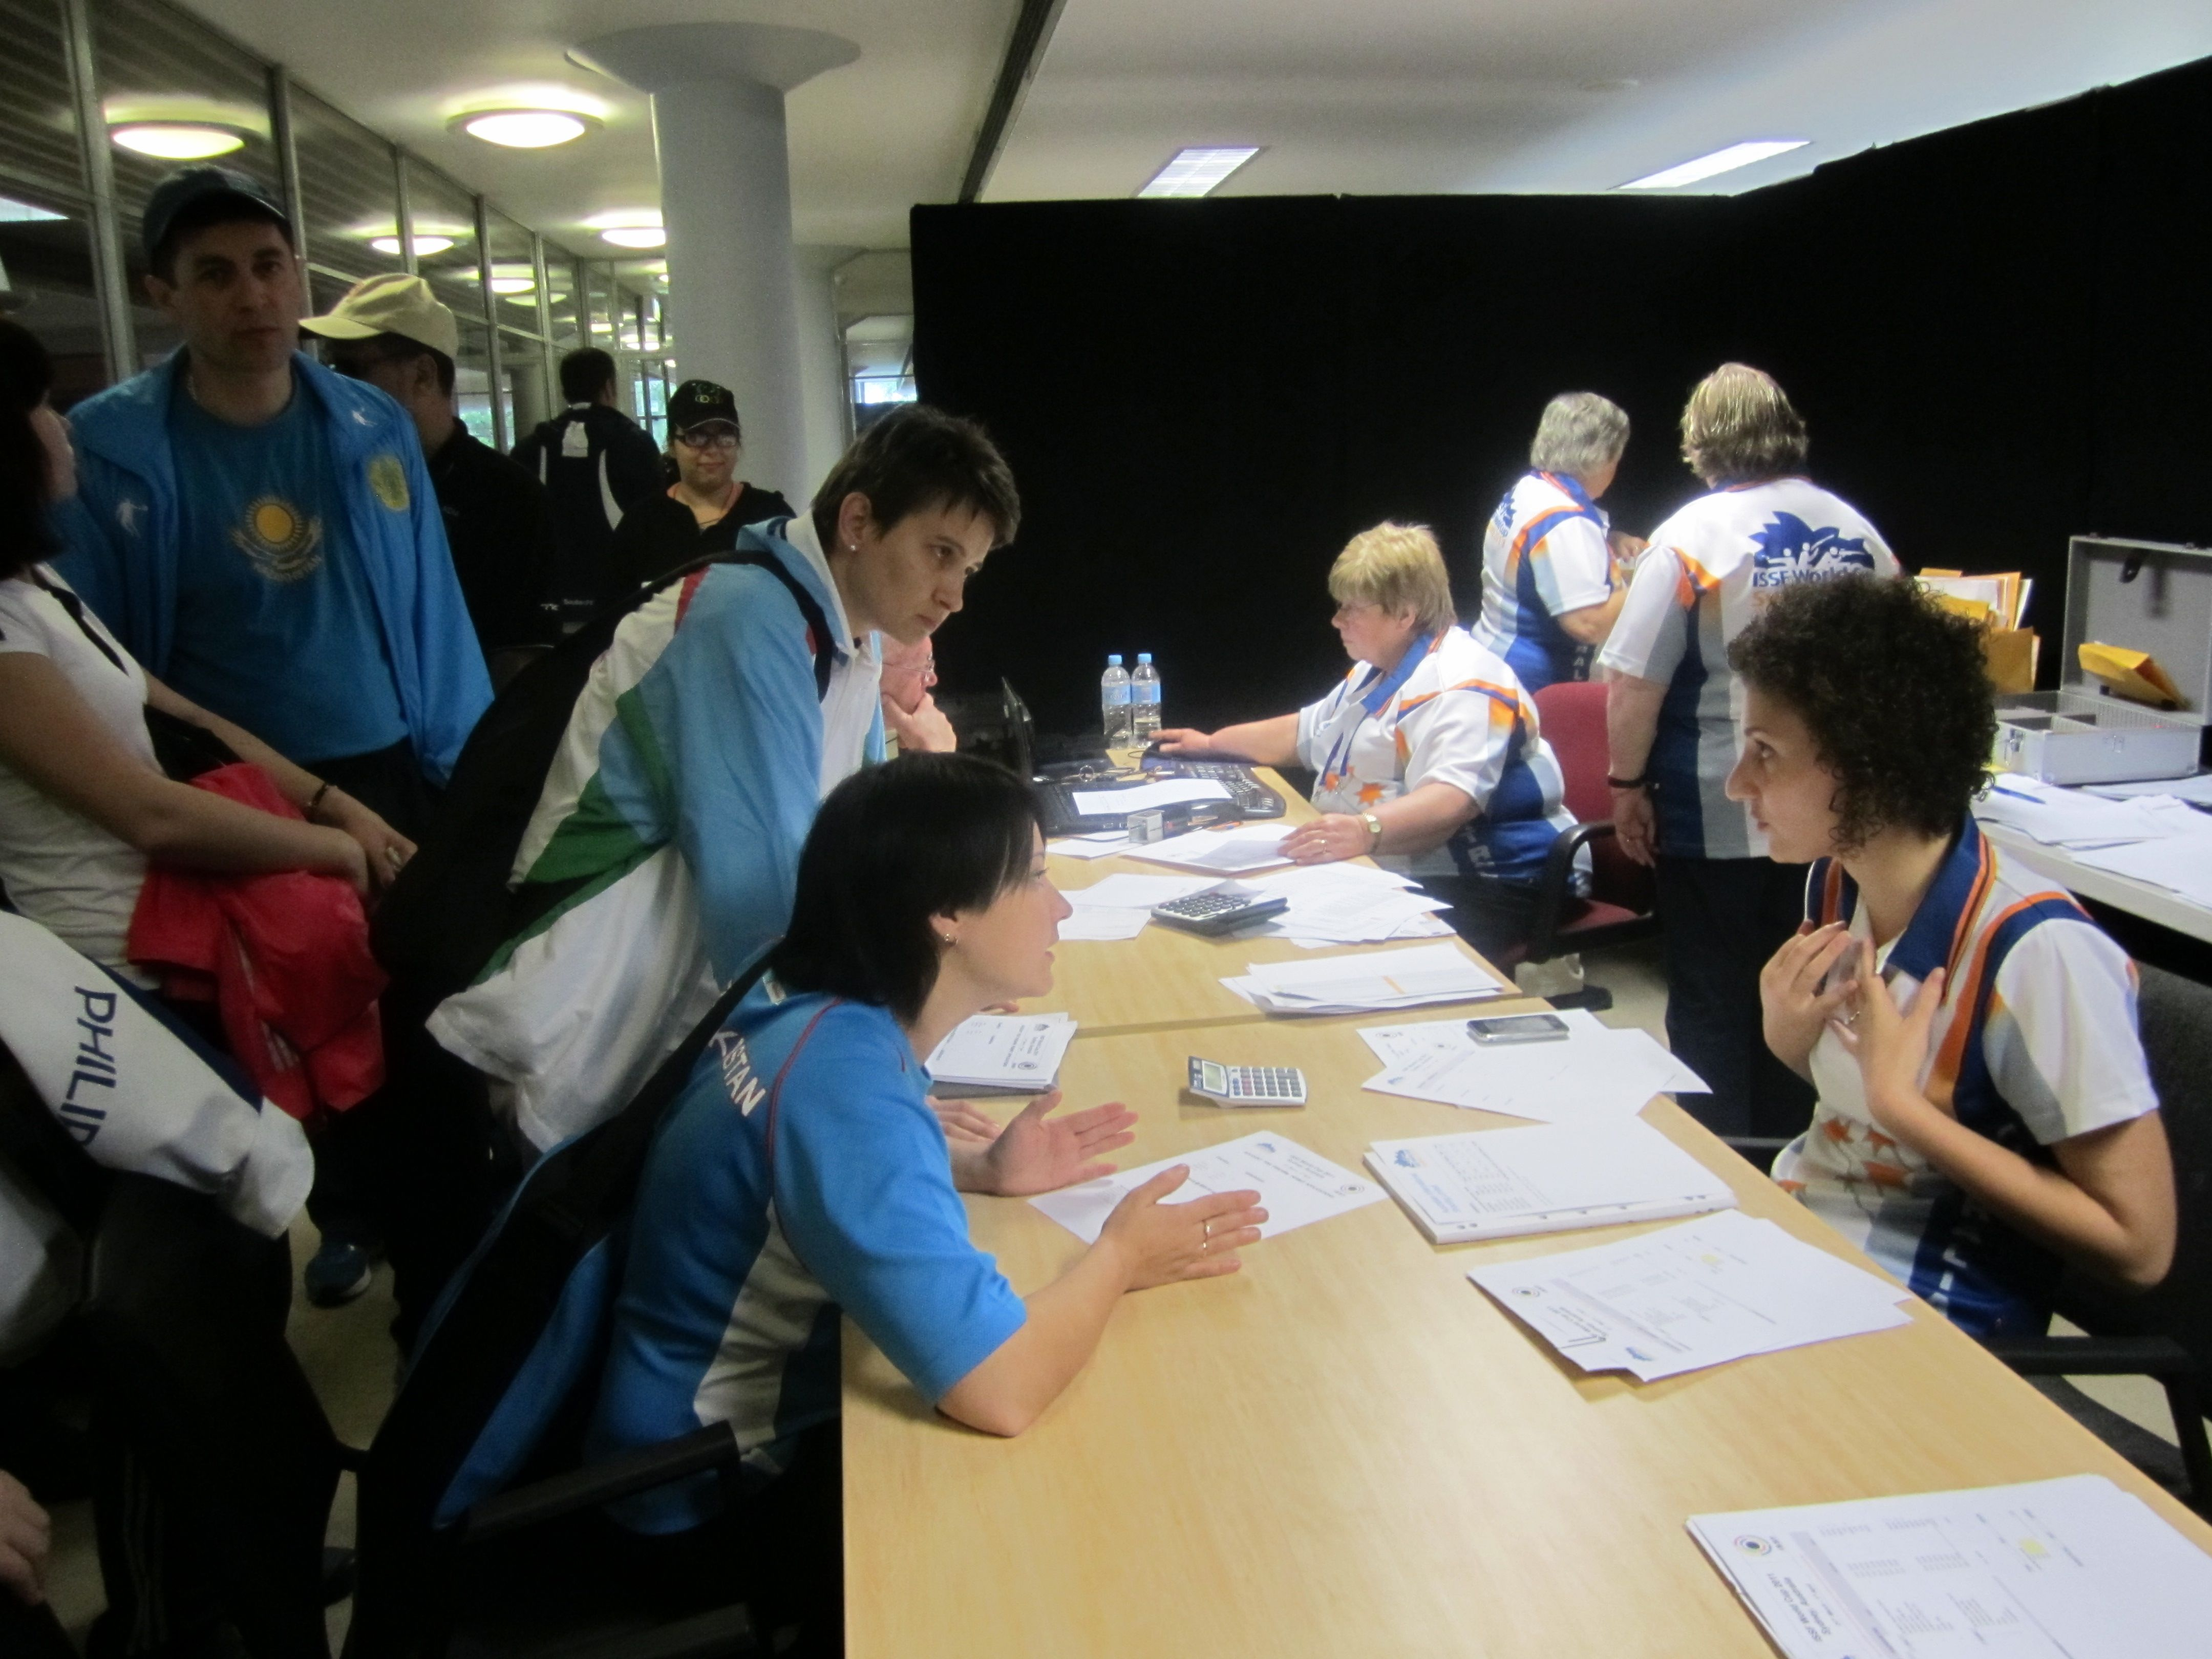 Accreditation desk at Syndey World Cup 2011